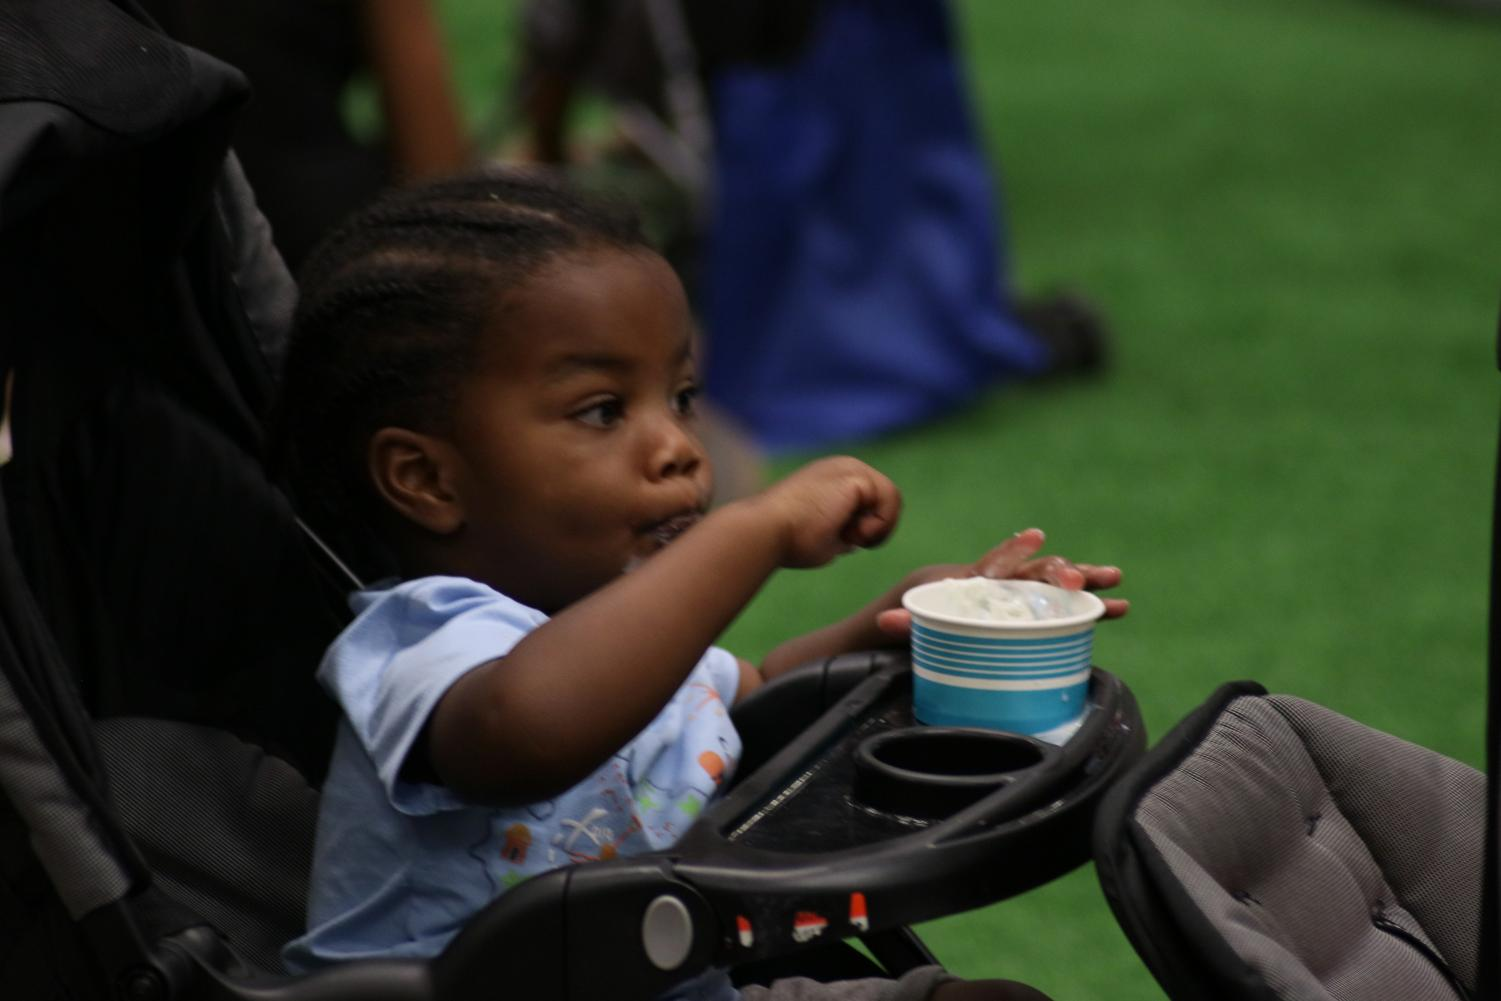 Kids enjoyed ice cream during the Ice Cream Festival in El Paso Convention Center on Sunday, June 20, 2019. Kids had the opportunity to make their own ice cream in different stands during the event.